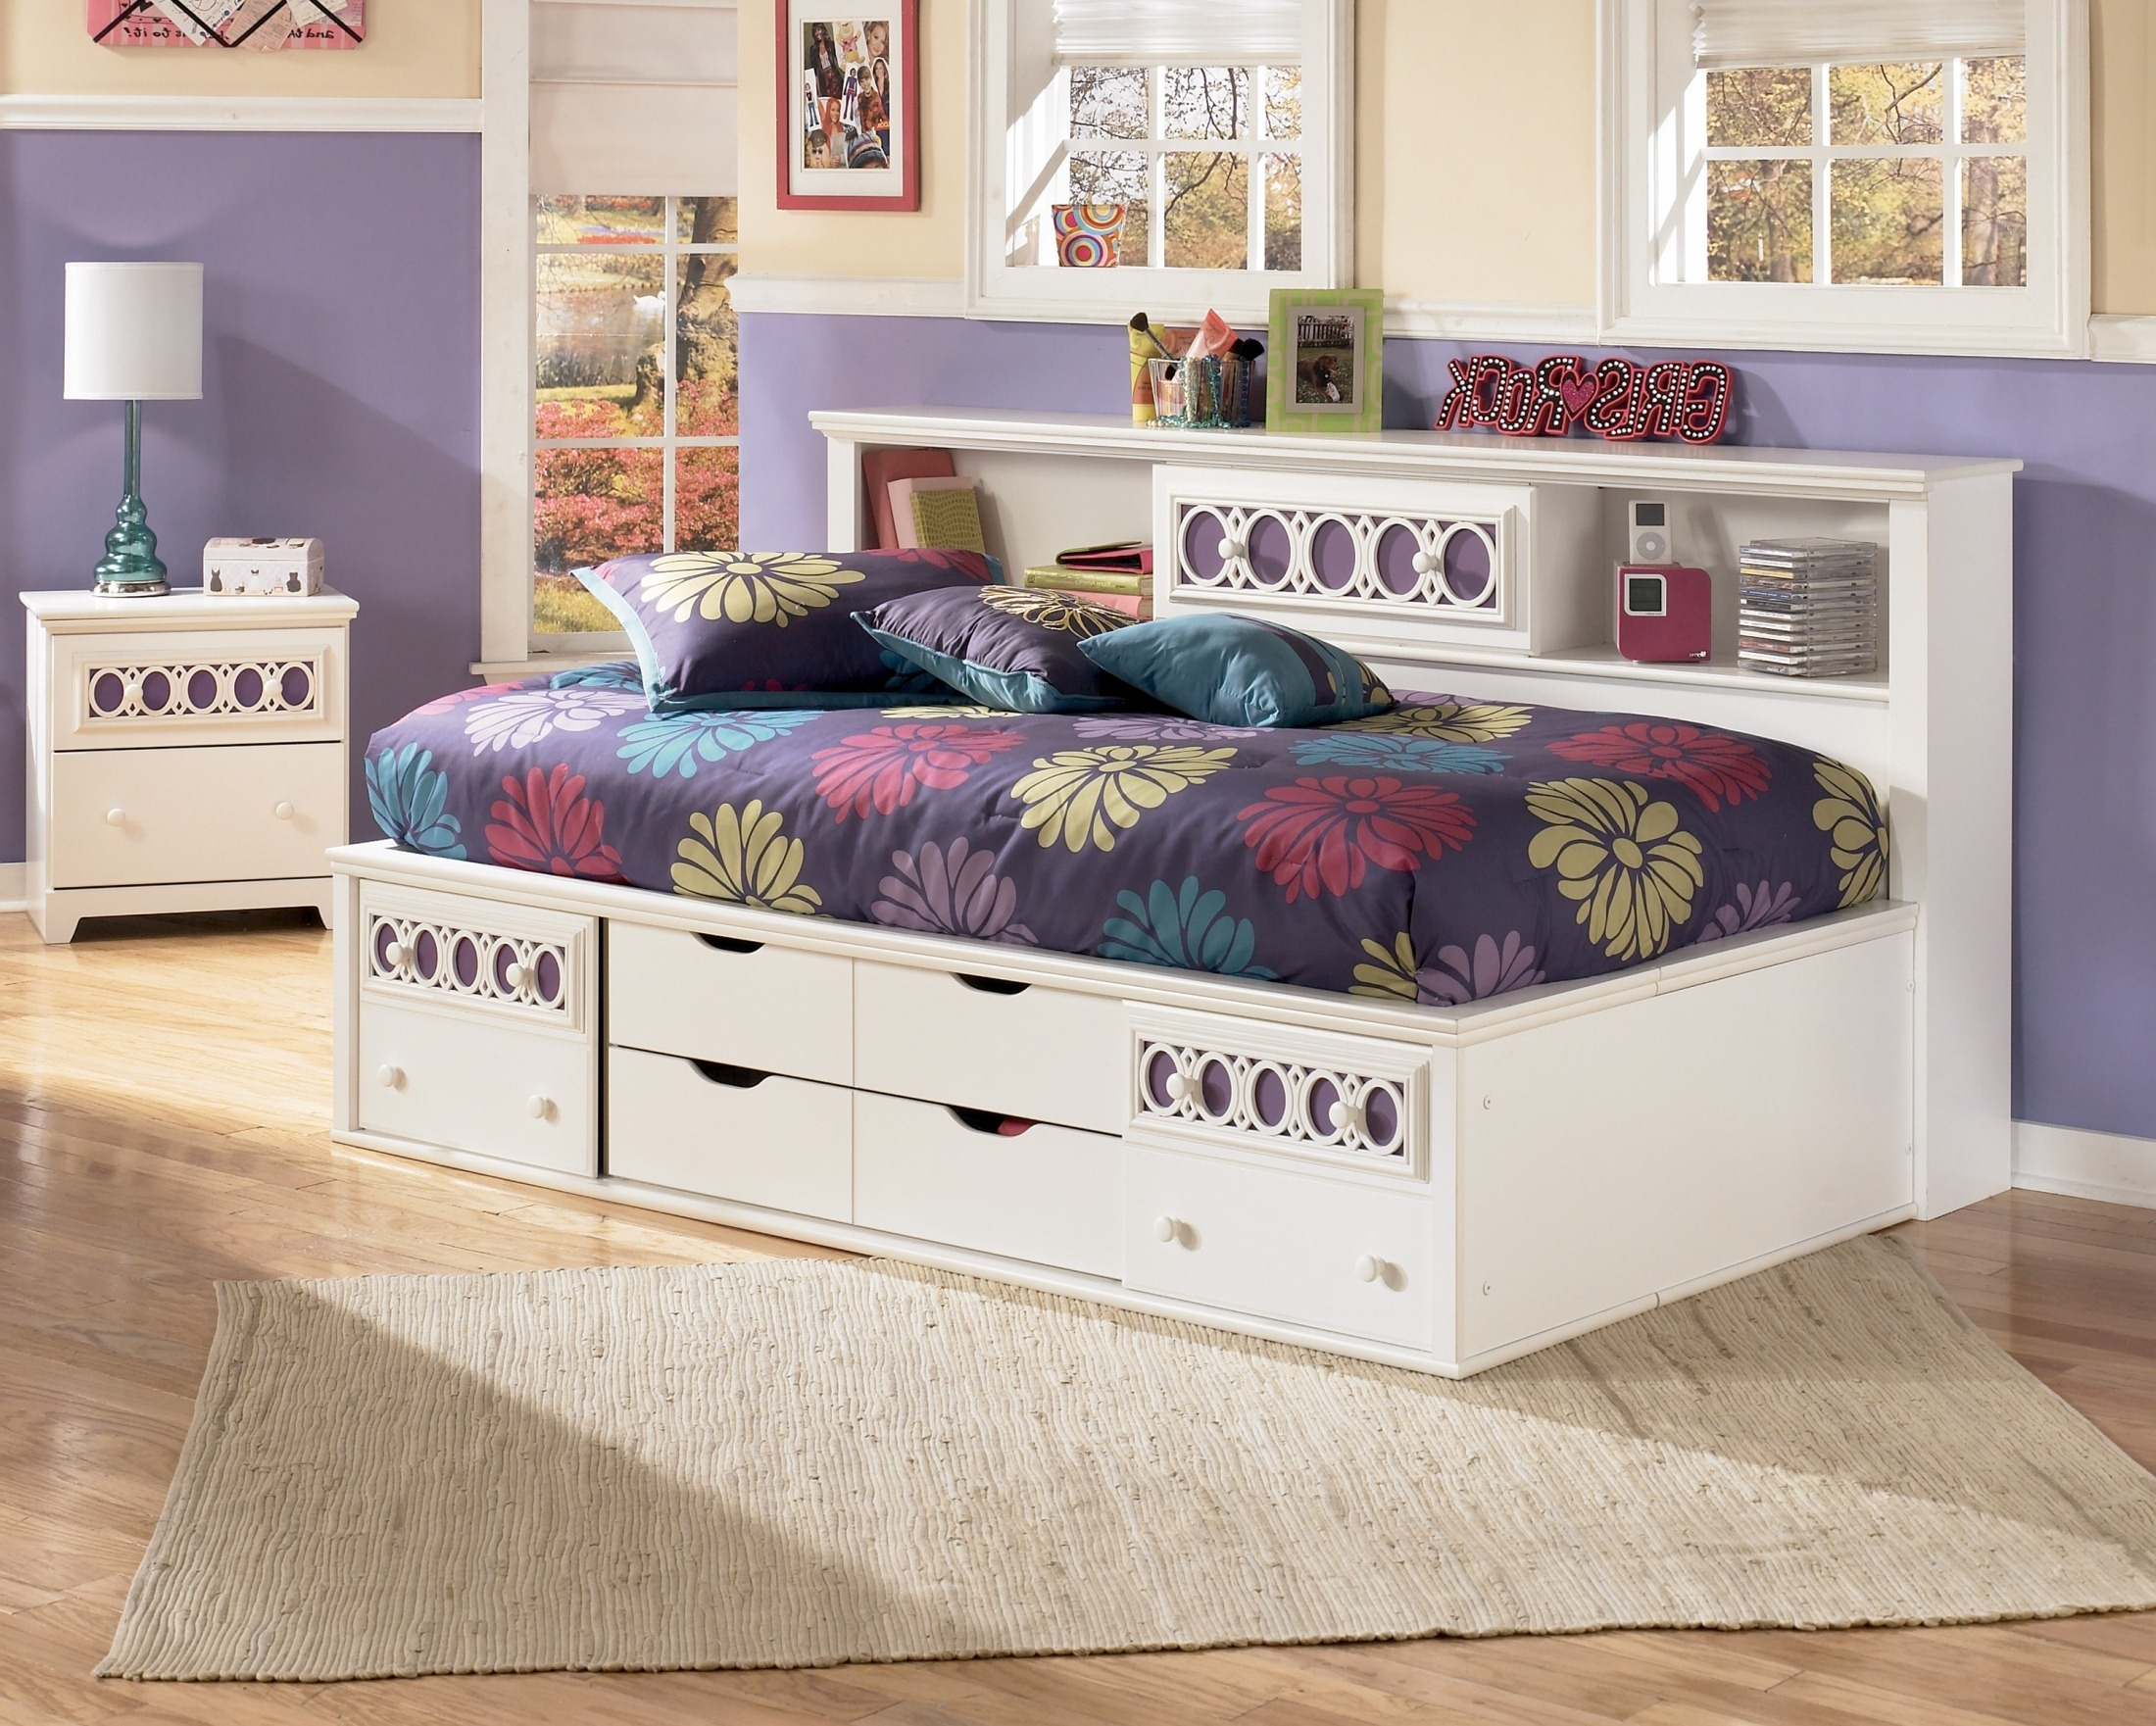 Best And Newest Zayley Full Bookcase Storage Bed – Storage Beds – Beds – Bedroom Inside Zayley Full Bed Bookcases (View 3 of 15)